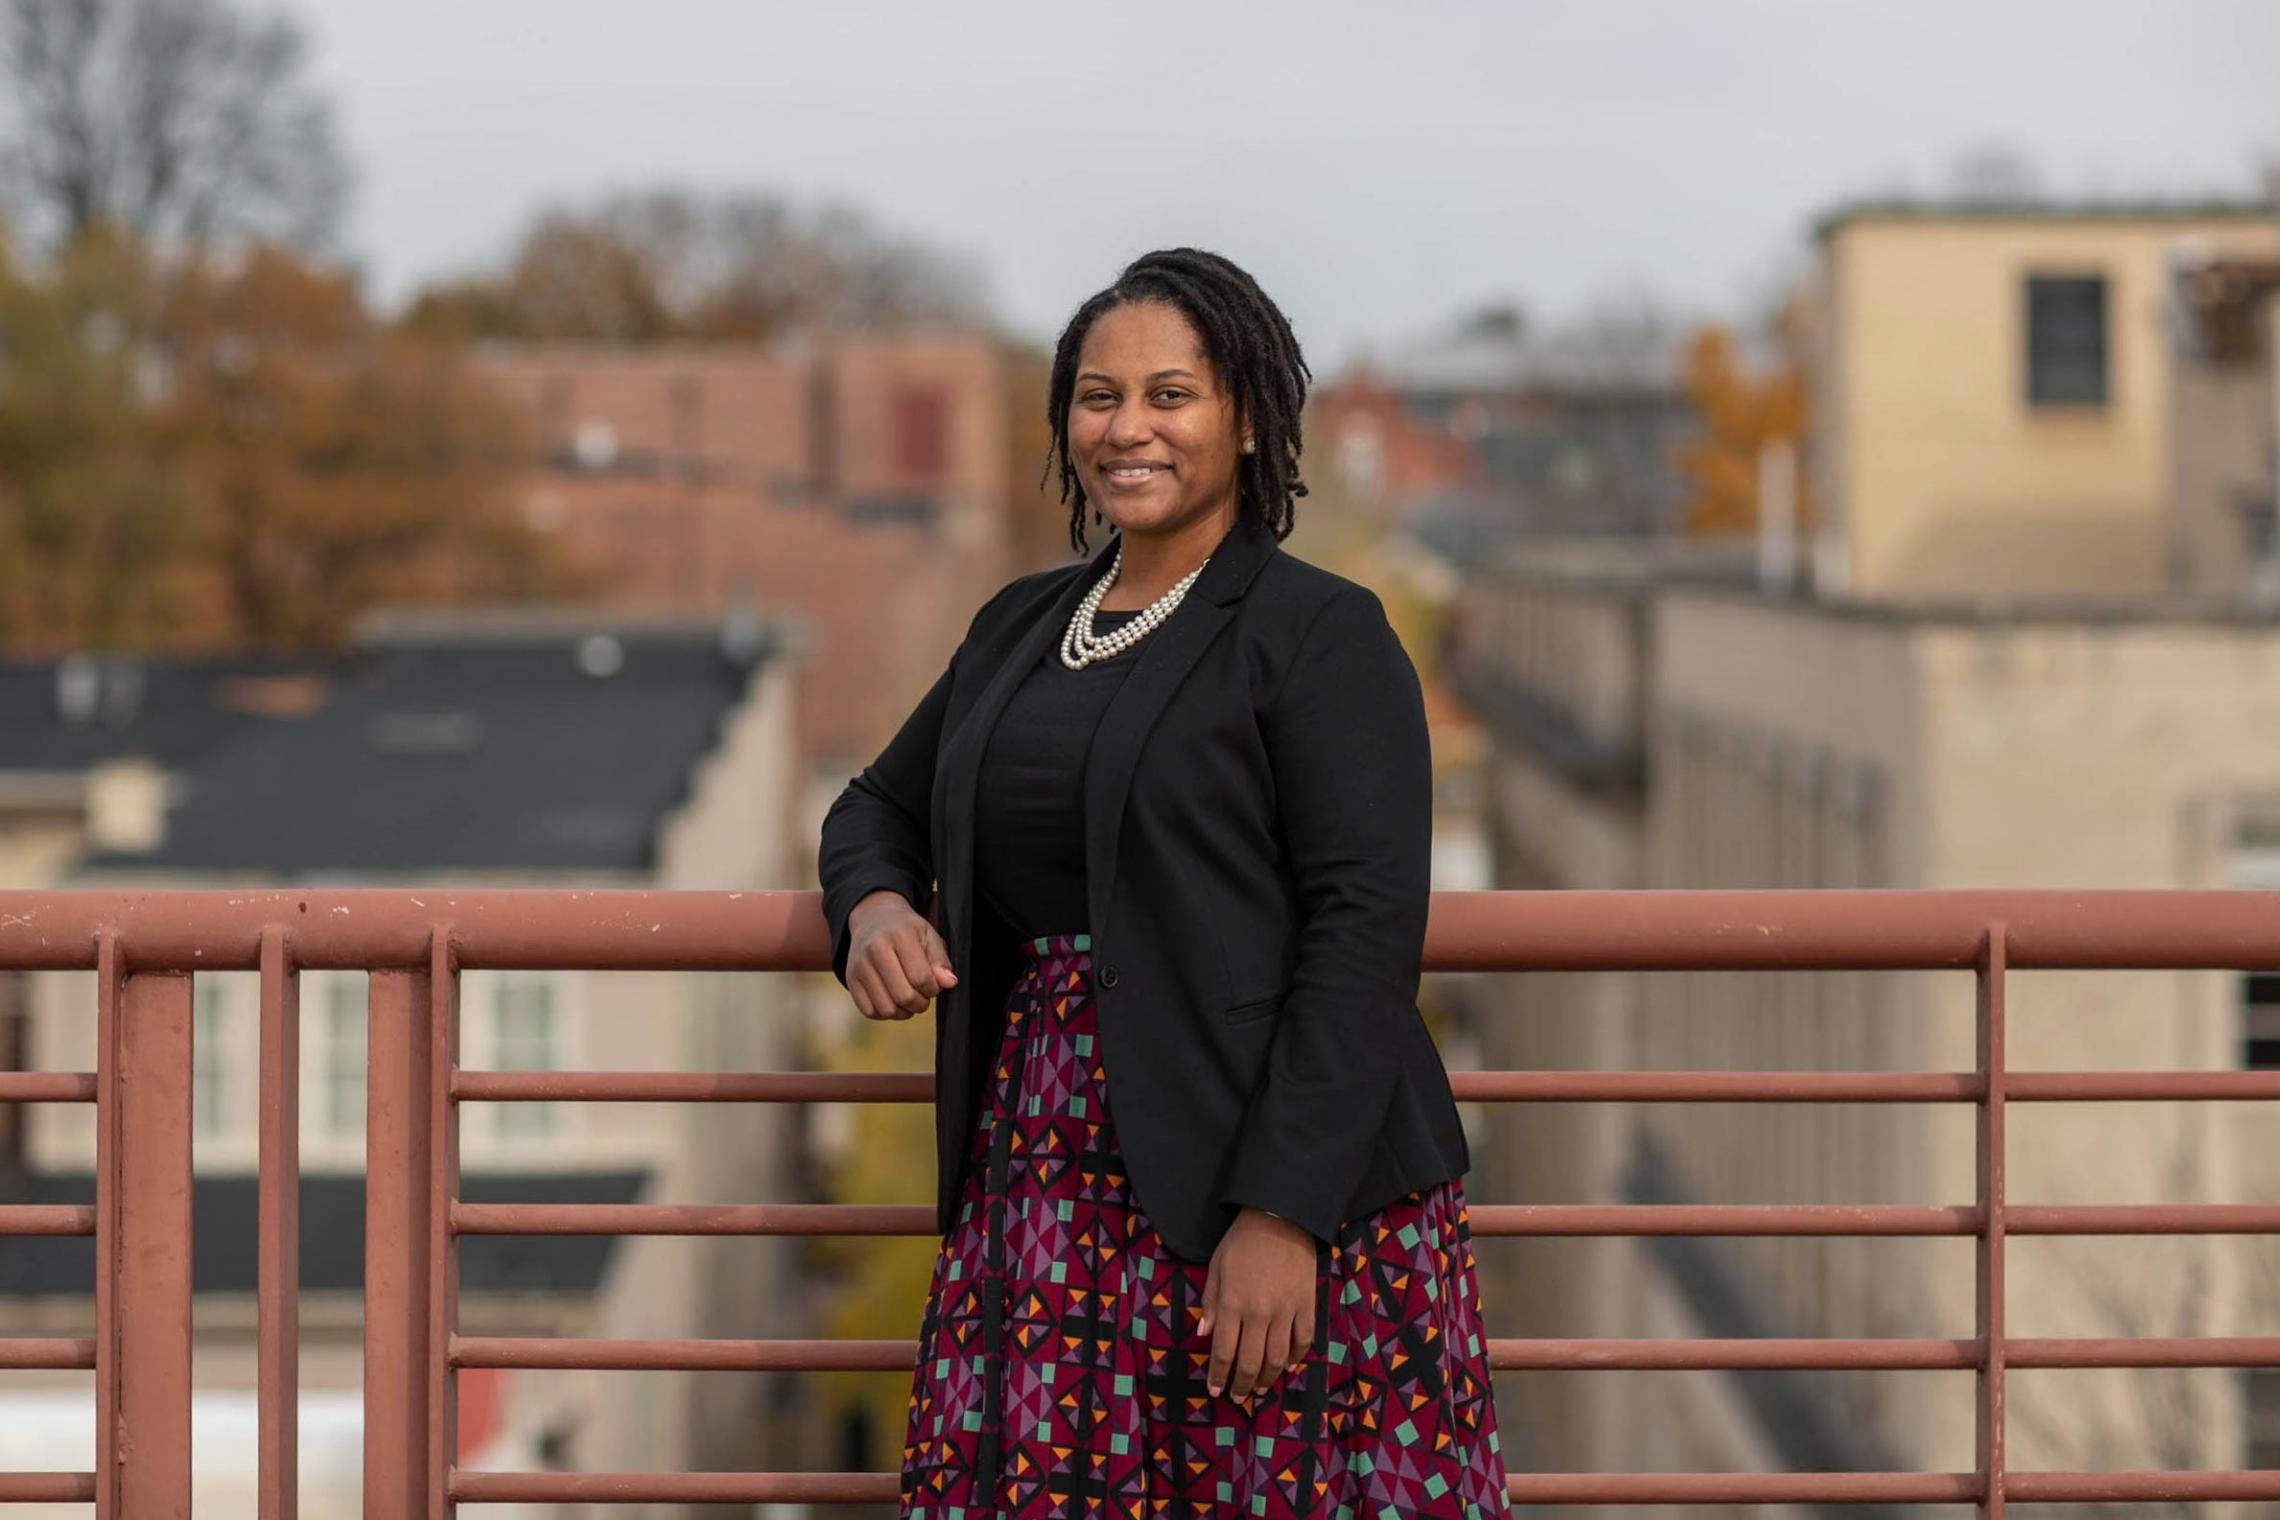 Tamara Wilkerson graduated from the Curry School and now leads the African American Teaching Fellows program in Charlottesville.